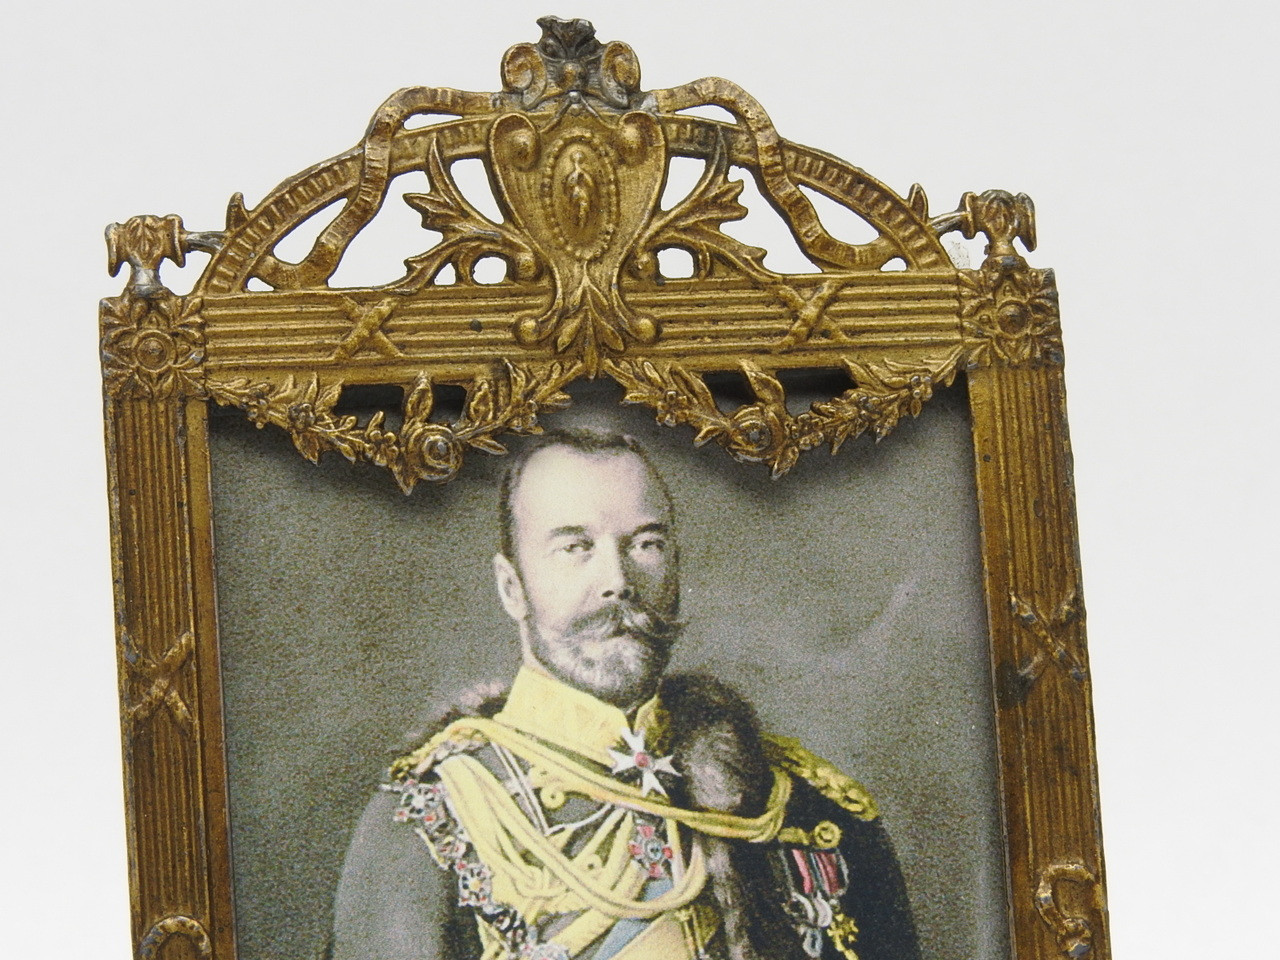 Brass frame made in France